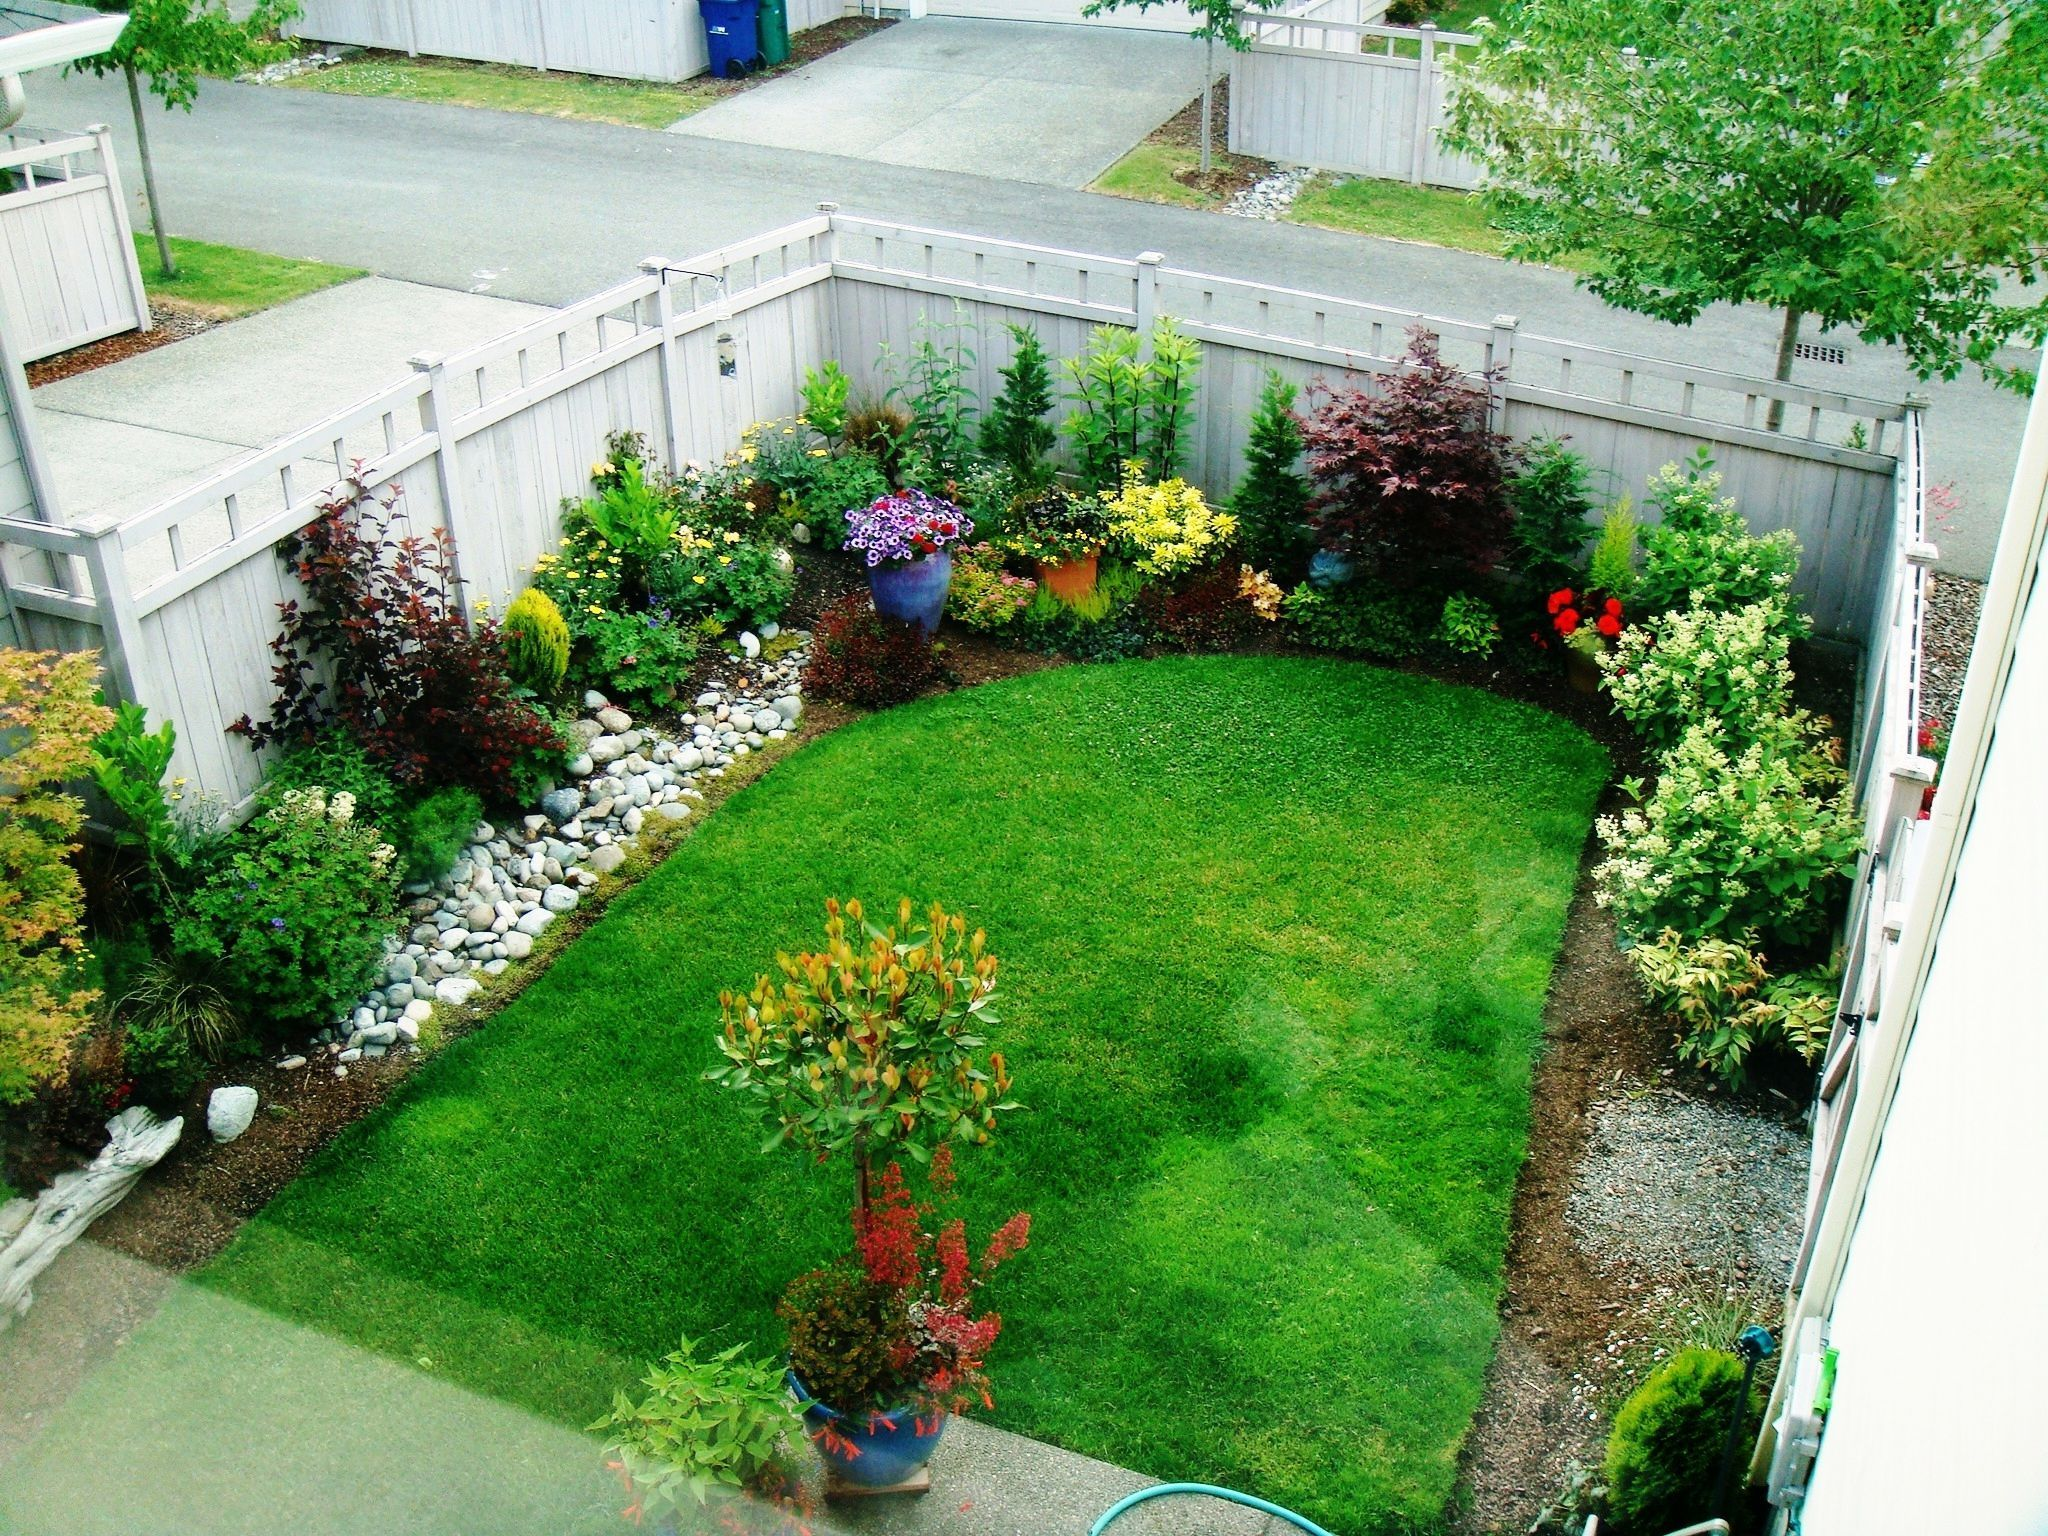 10 Garden Ideas For Small Yards Most Of The Awesome And Stunning Small Garden Landscape Small Yard Landscaping Front Garden Design